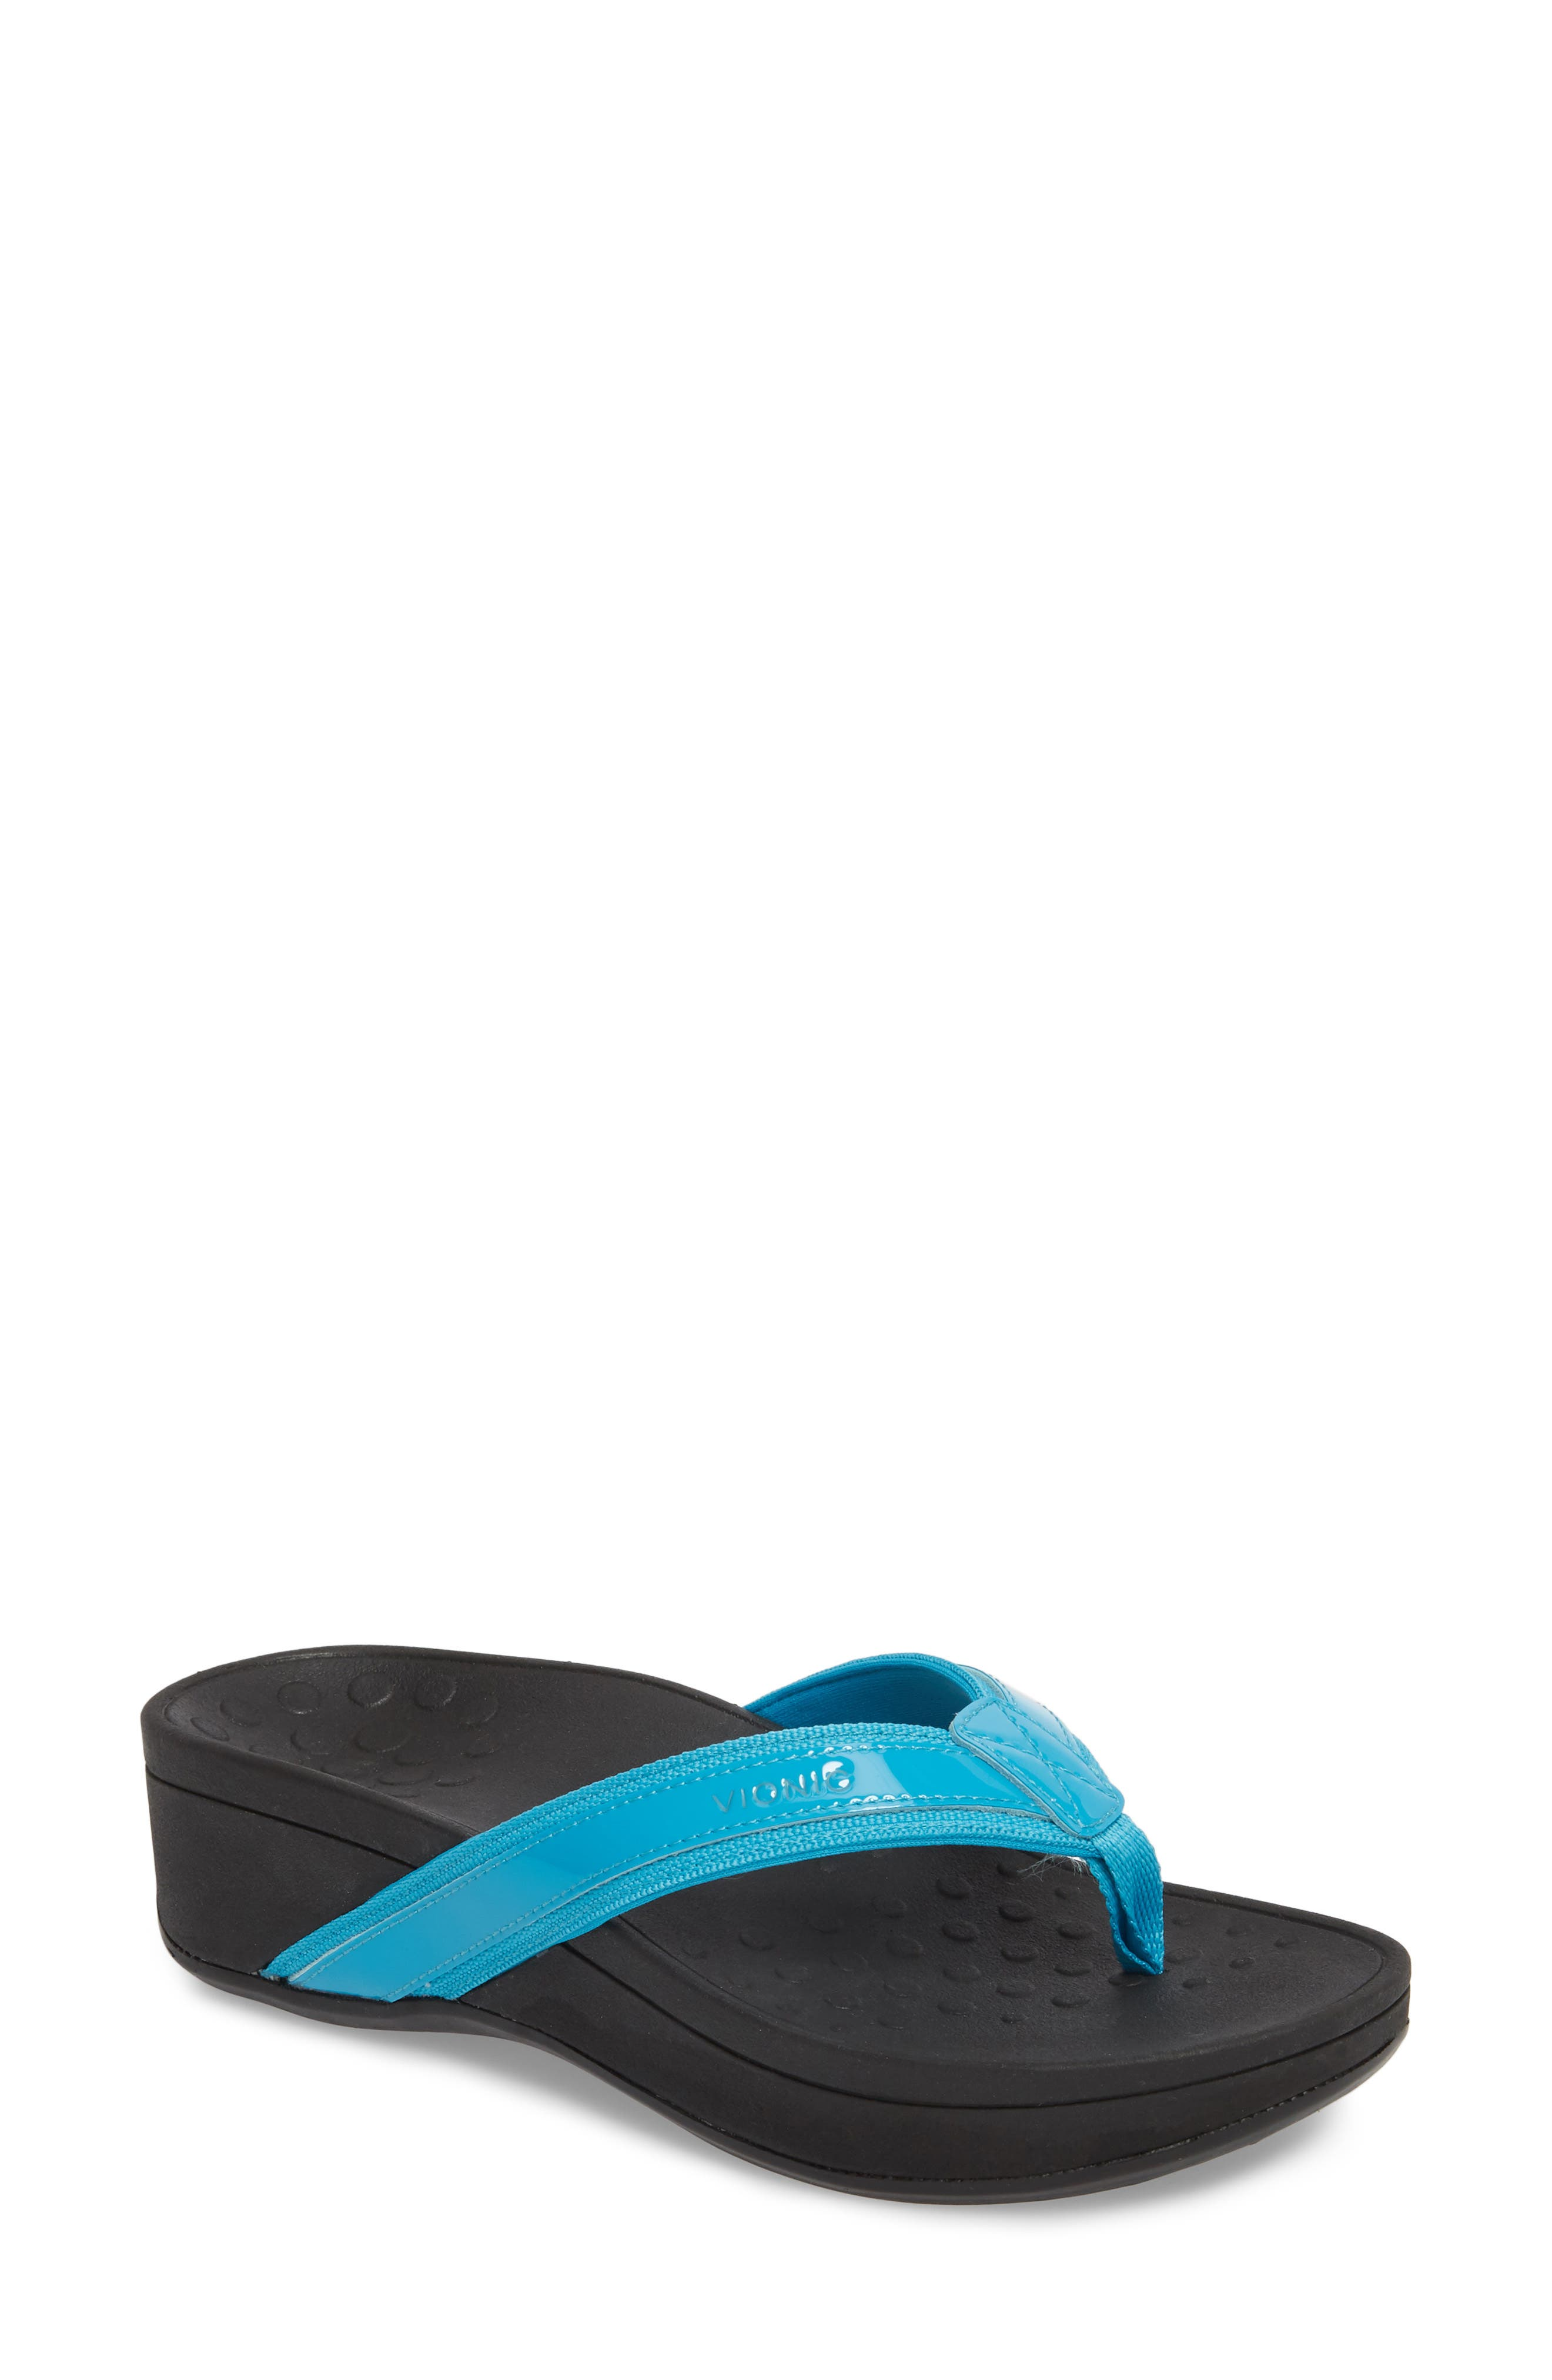 High Tide Wedge Flip Flop,                         Main,                         color, Turquoise Leather